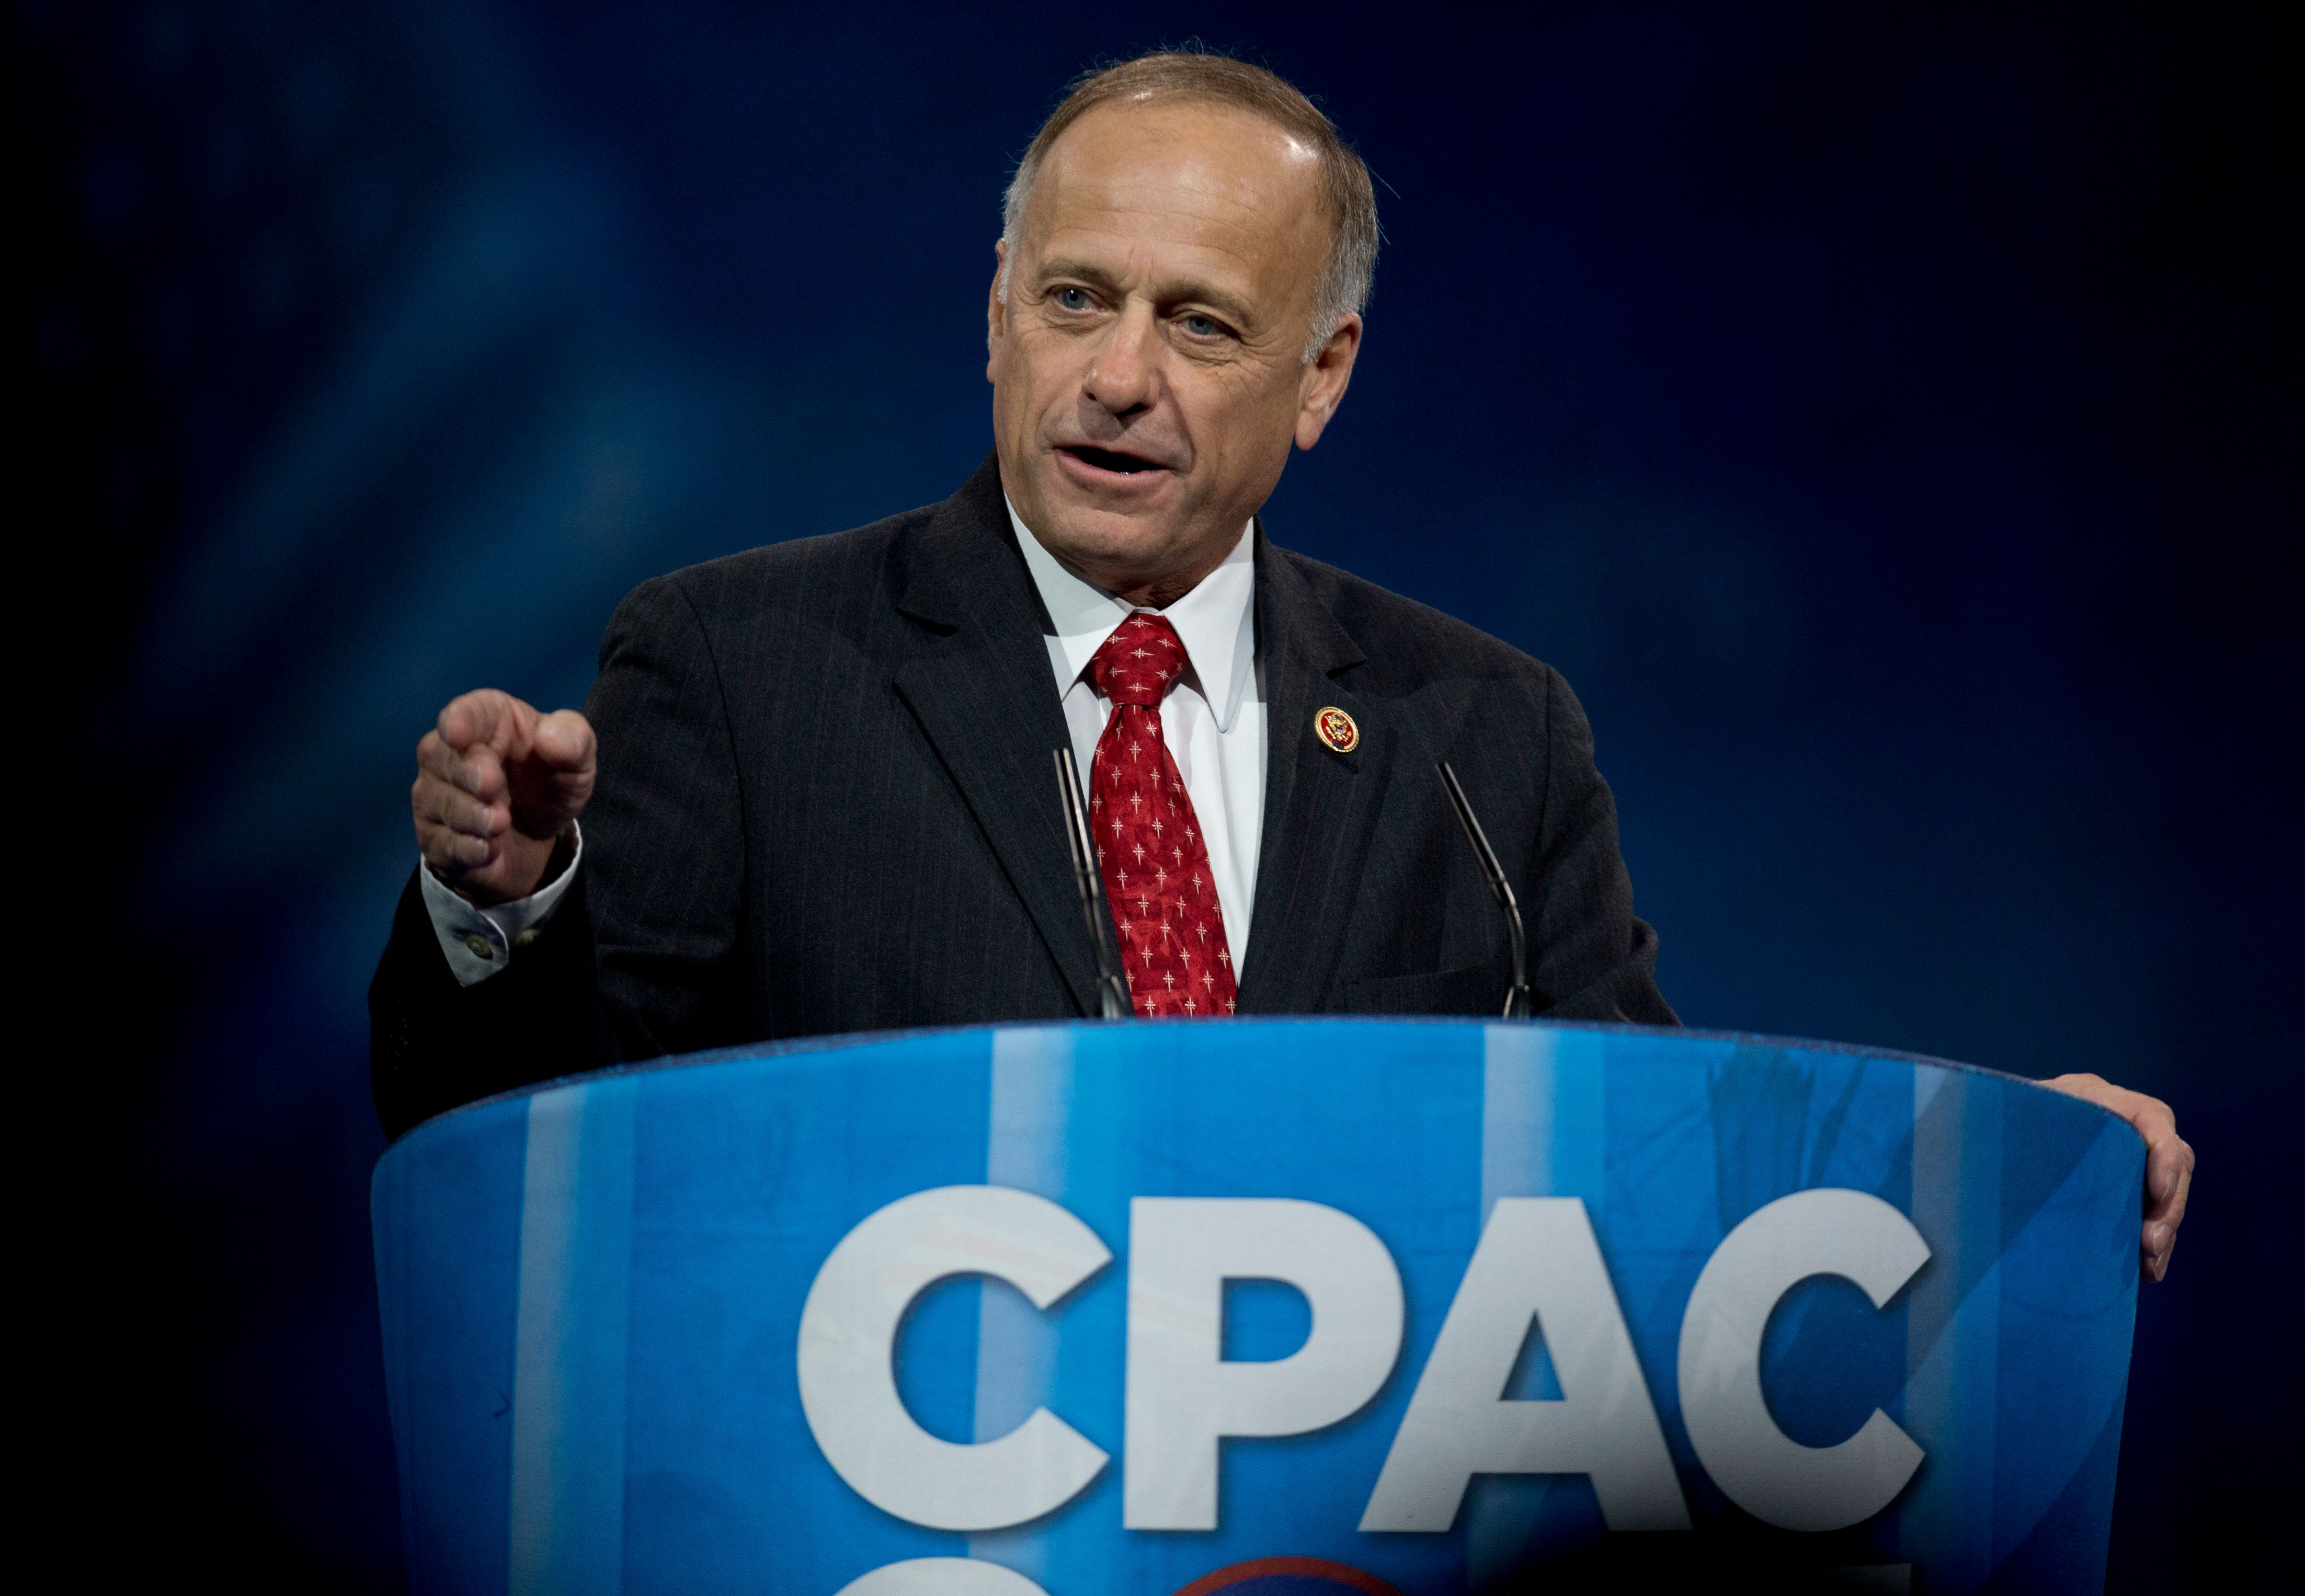 Westlake Legal Group 5c3d6c7c24000053004862ae GOP strips Rep. Steve King of committee assignments over white supremacist views